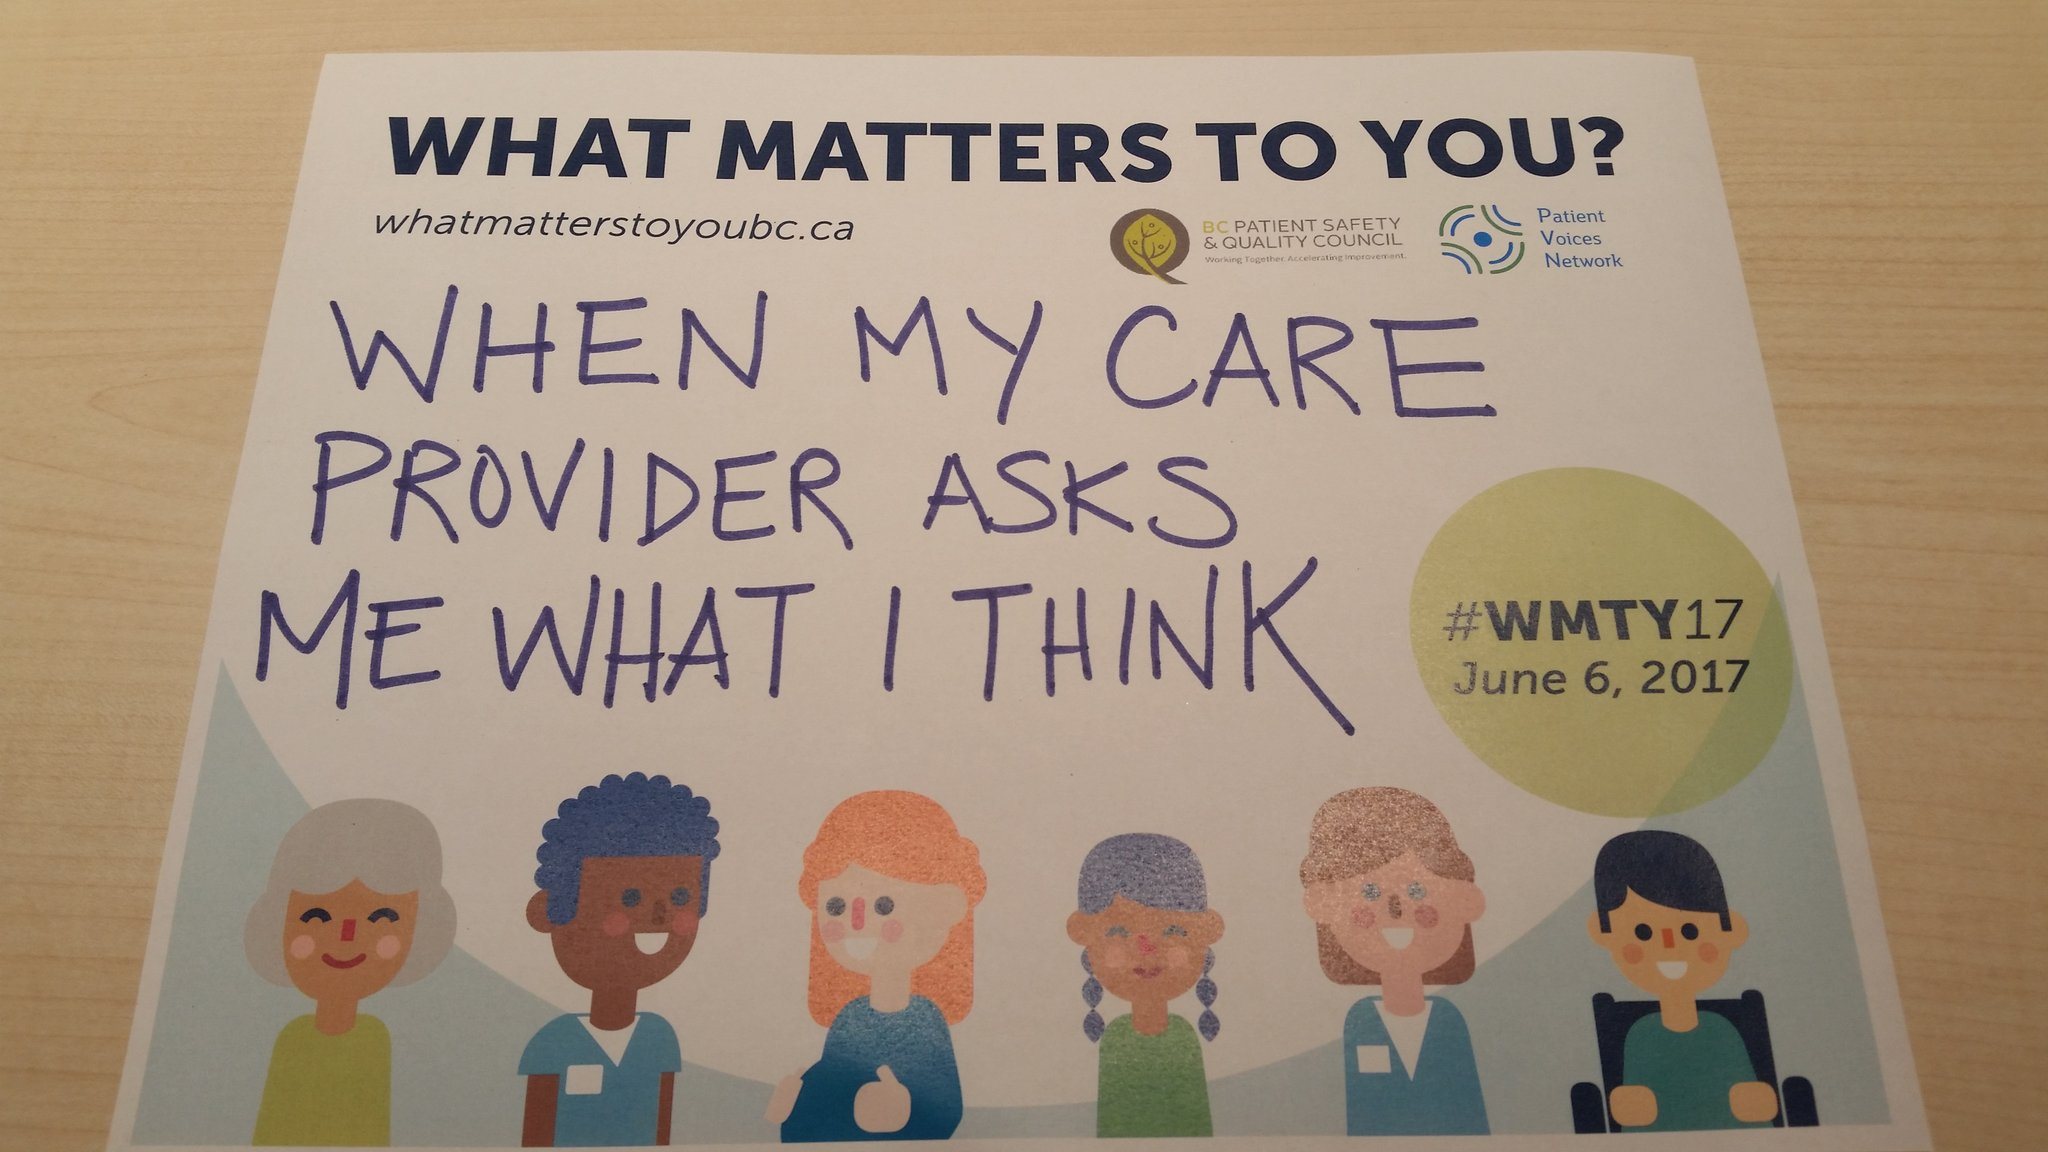 @VanIslandHealth It's so welcome to be asked what I think! #wmty17 https://t.co/Tgur0jtMDz